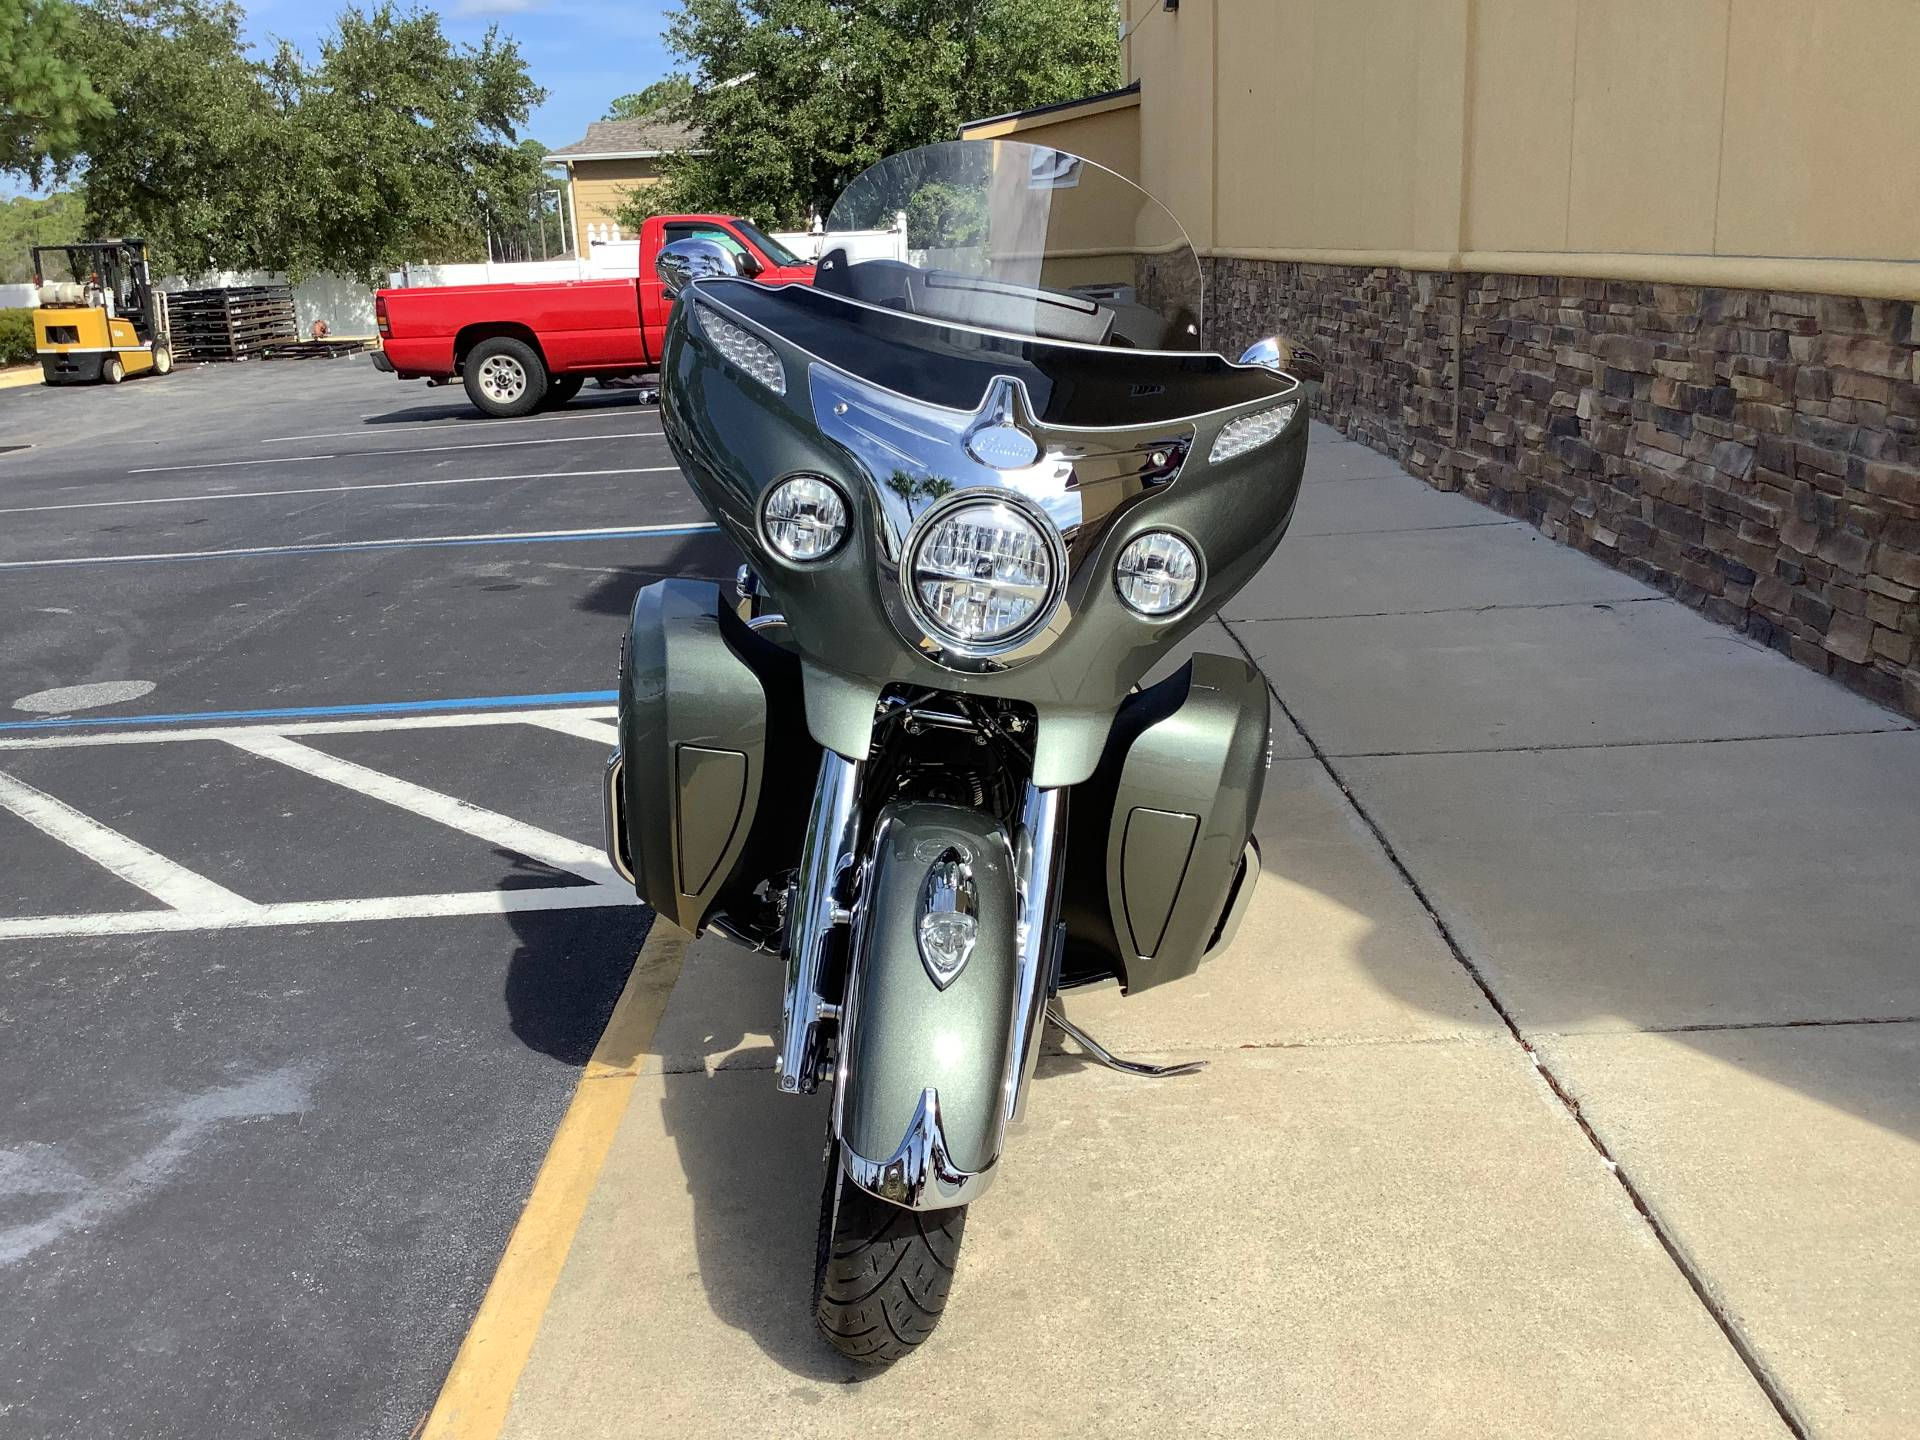 2021 Indian ROADMASTER in Panama City Beach, Florida - Photo 15